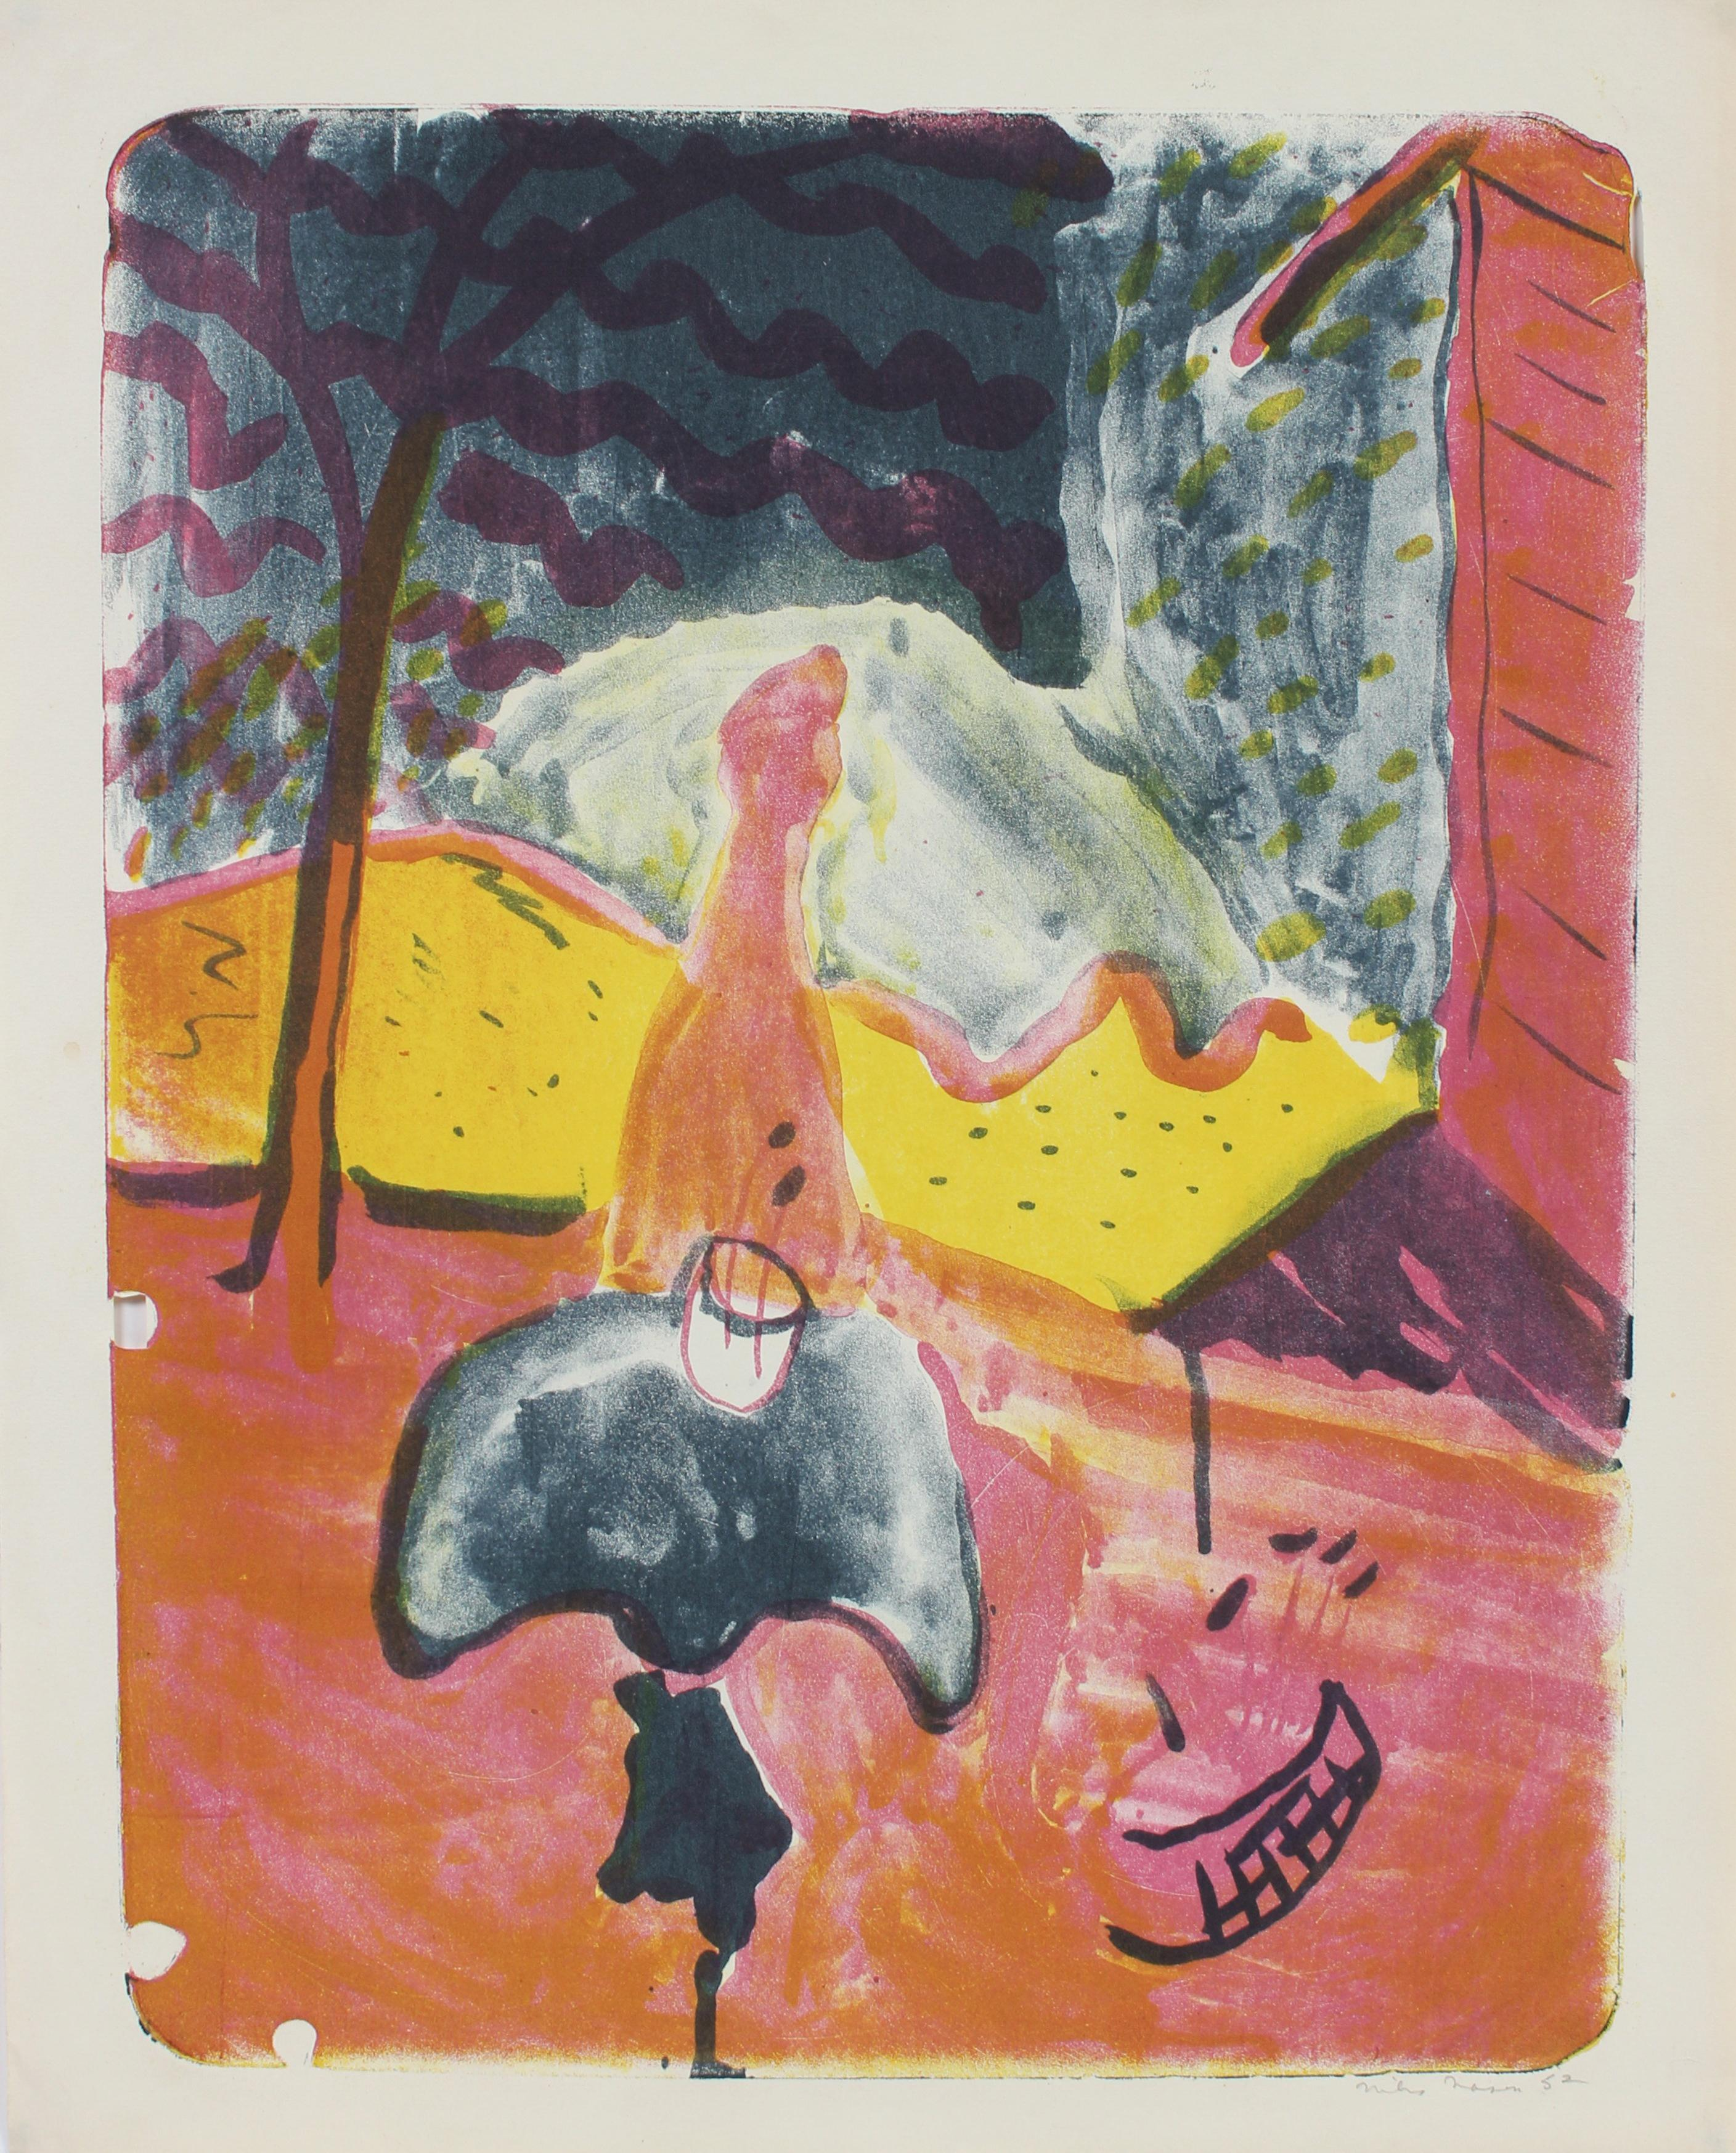 Colorful Abstracted Landscape Lithograph on Paper with Pink and Yellow, 1952